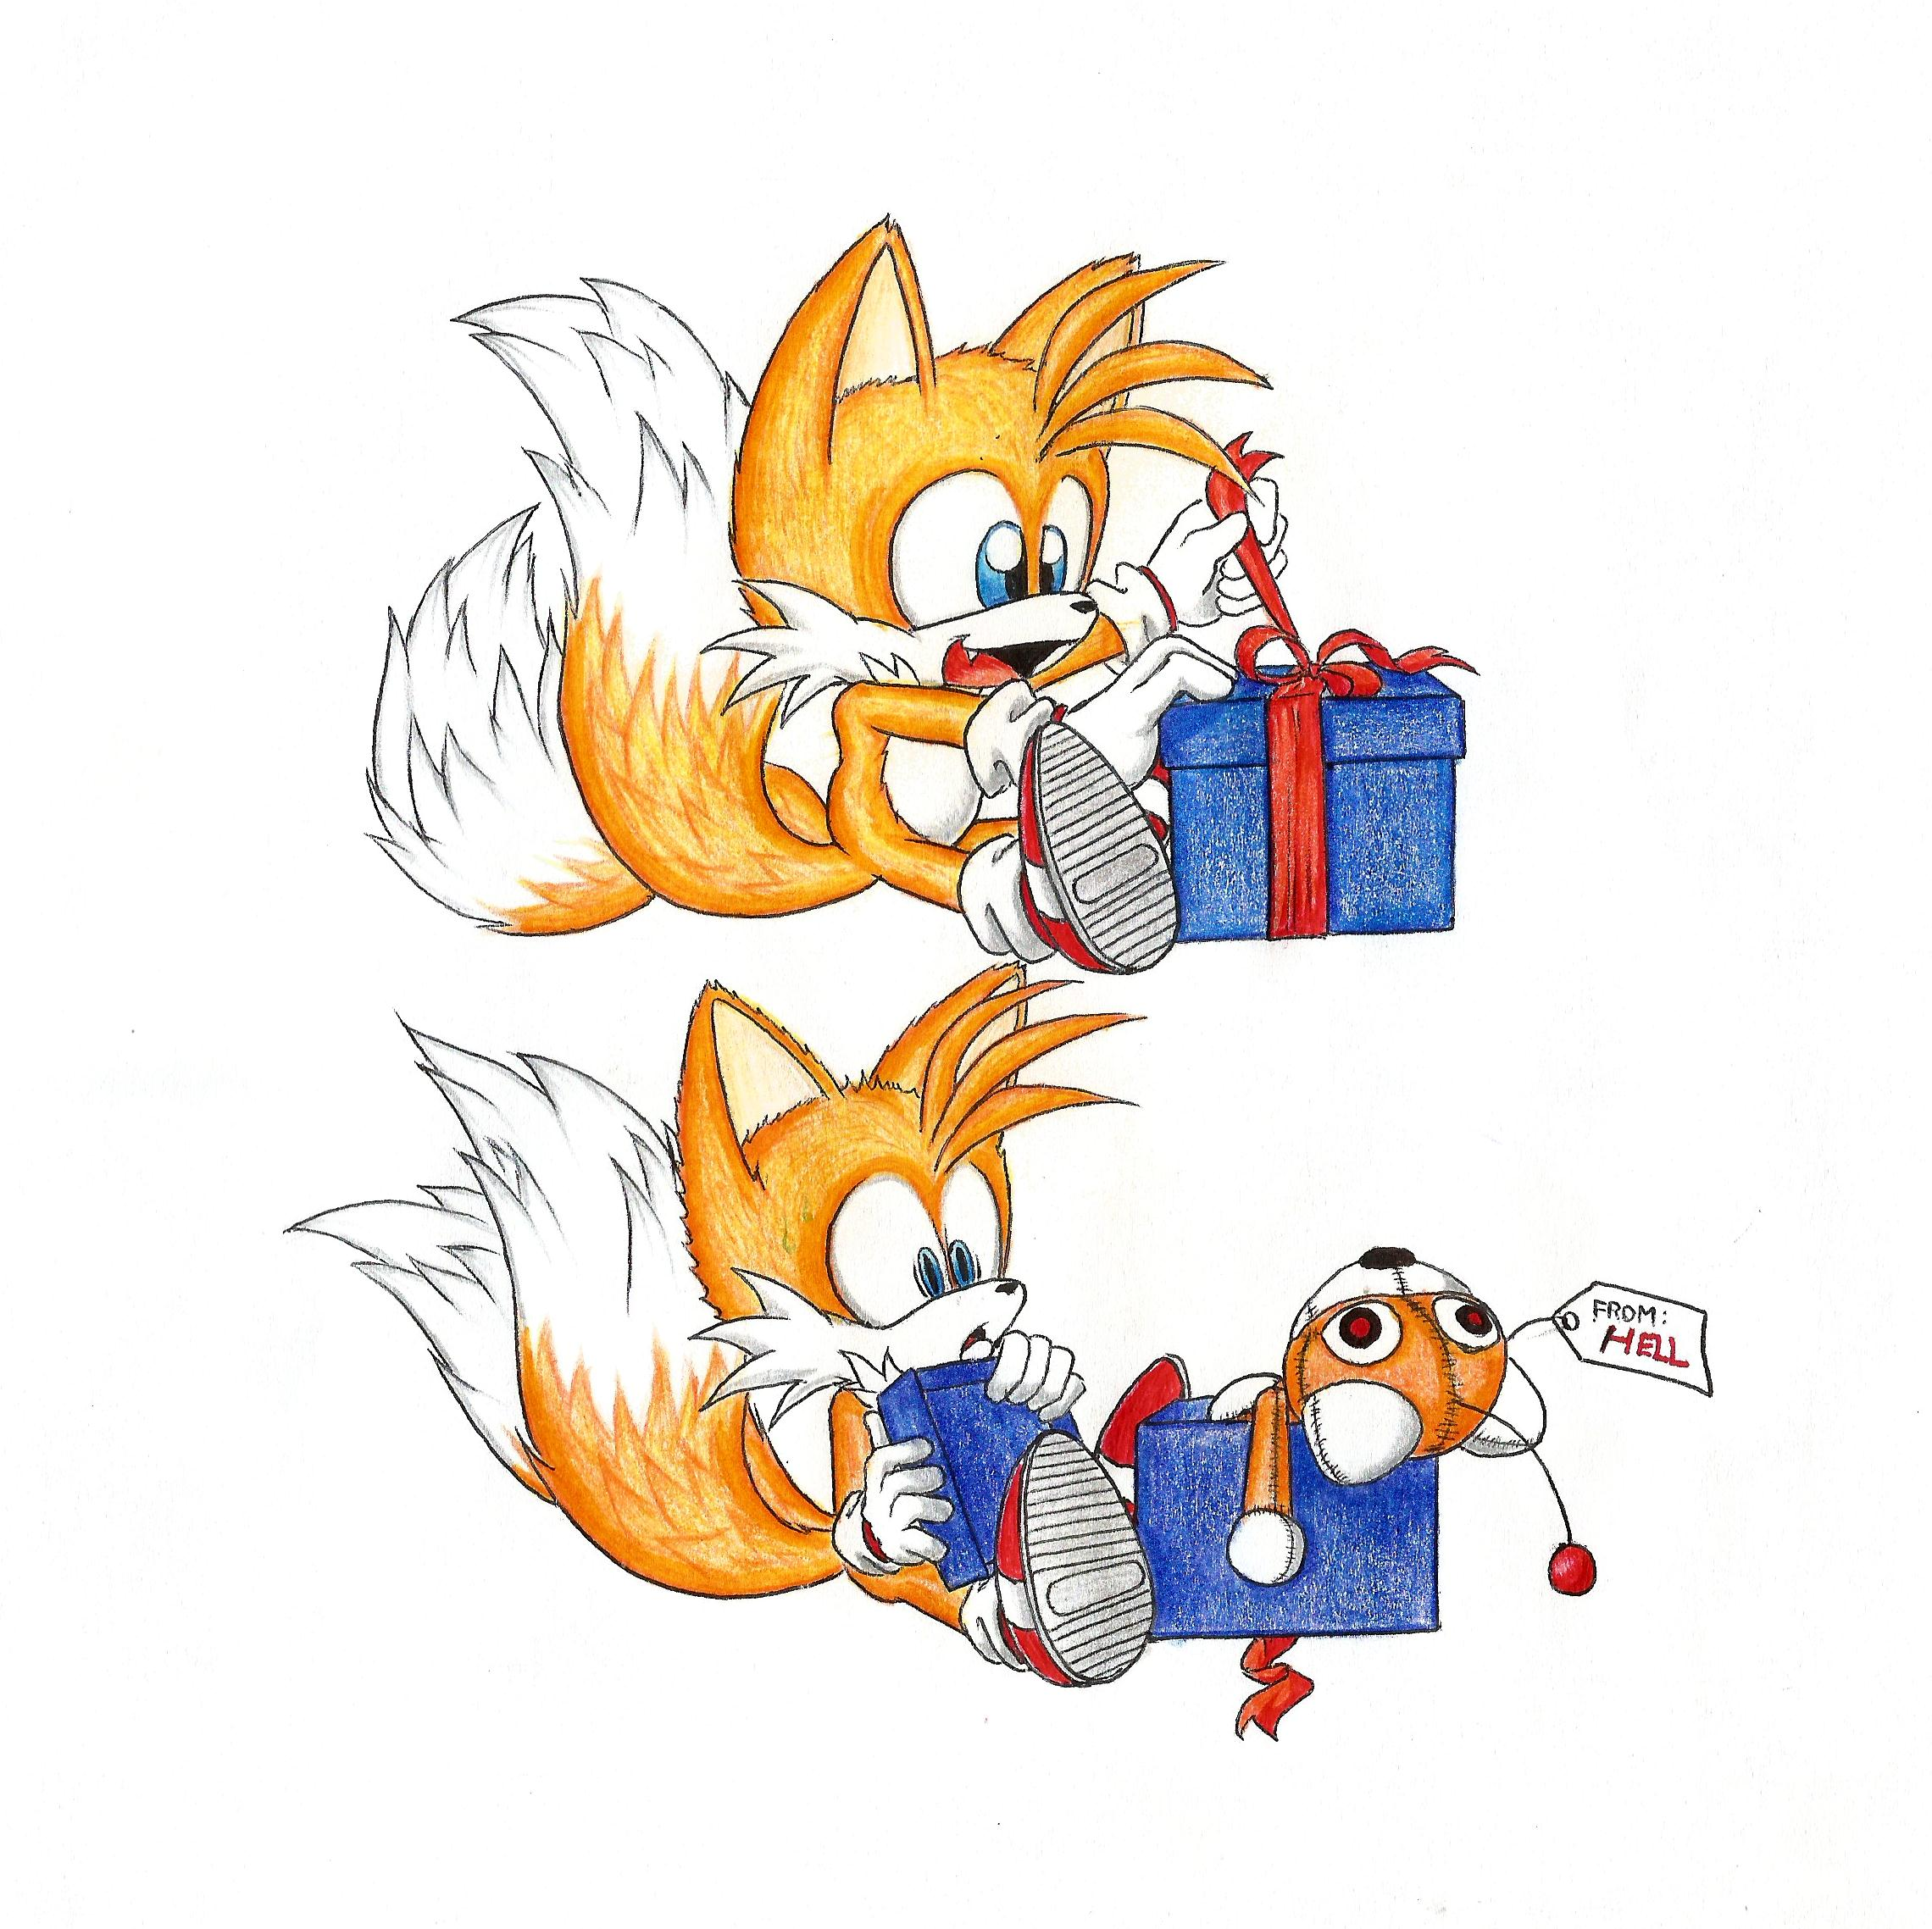 Tails learning to box by Dash-The-Cheetah on DeviantArt